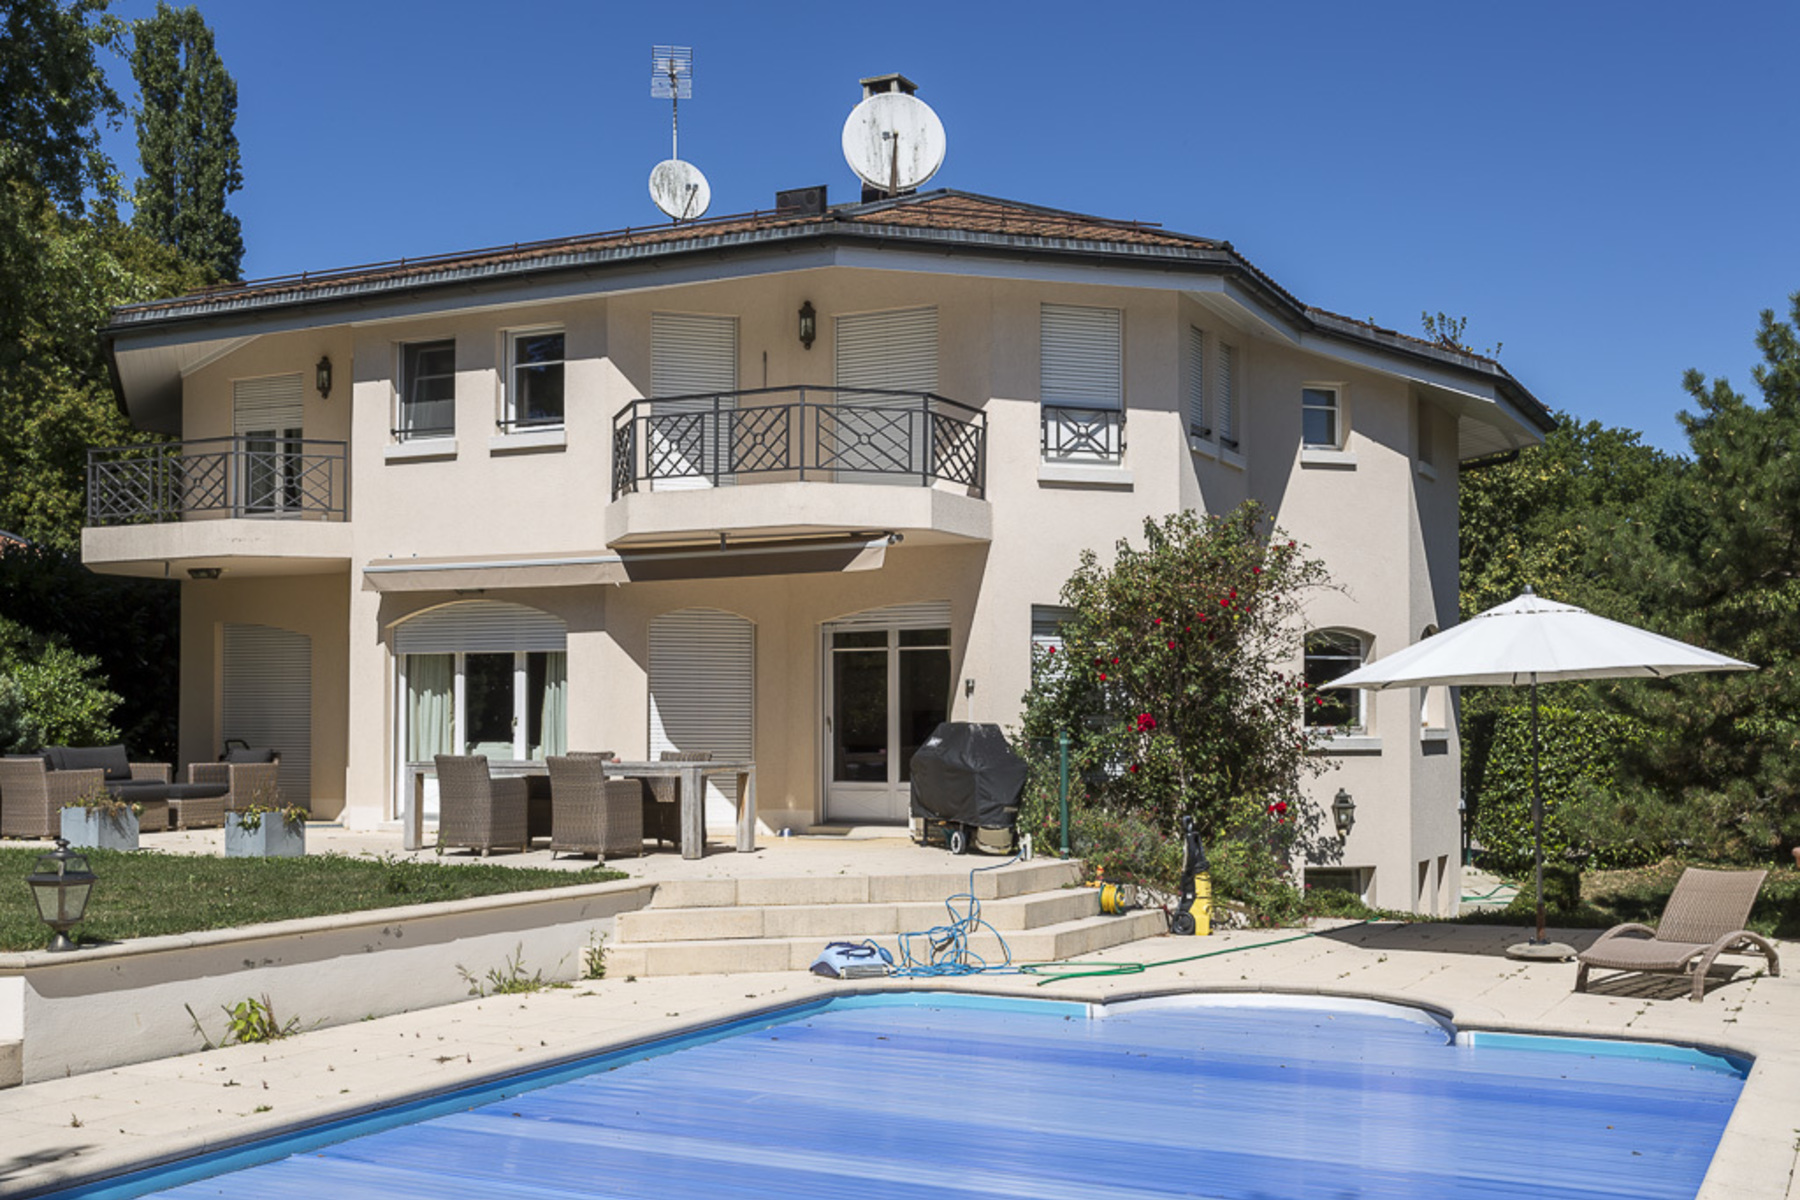 Single Family Home for Sale at Beautiful villa with pool, ideal for a family Vandoeuvres Vandoeuvres, Geneva, 1253 Switzerland